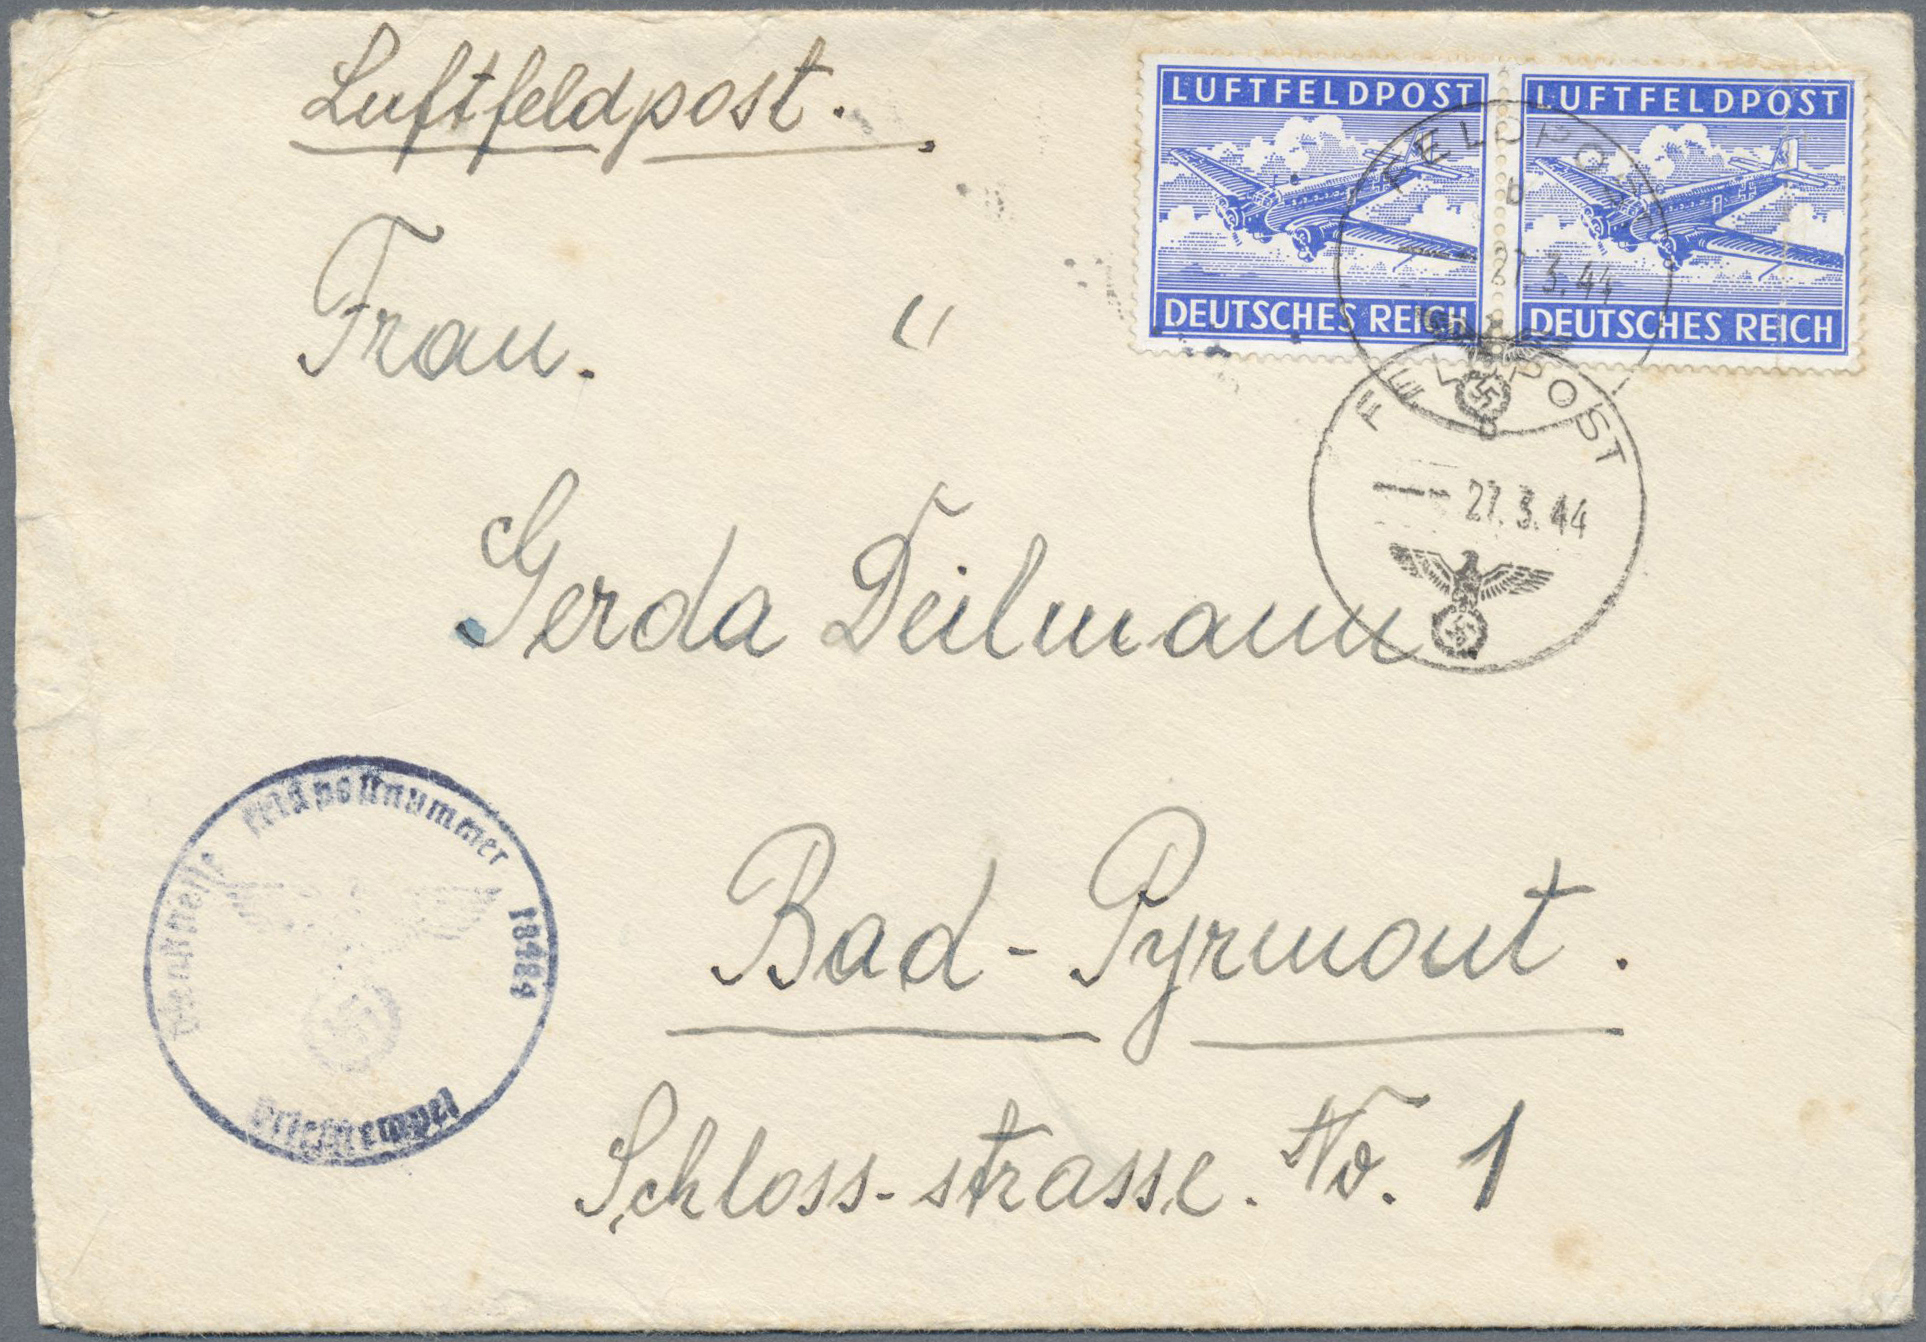 Lot 32049 - feldpost 2. weltkrieg  -  Auktionshaus Christoph Gärtner GmbH & Co. KG Auction #40 Collections Germany, Wunderkartons